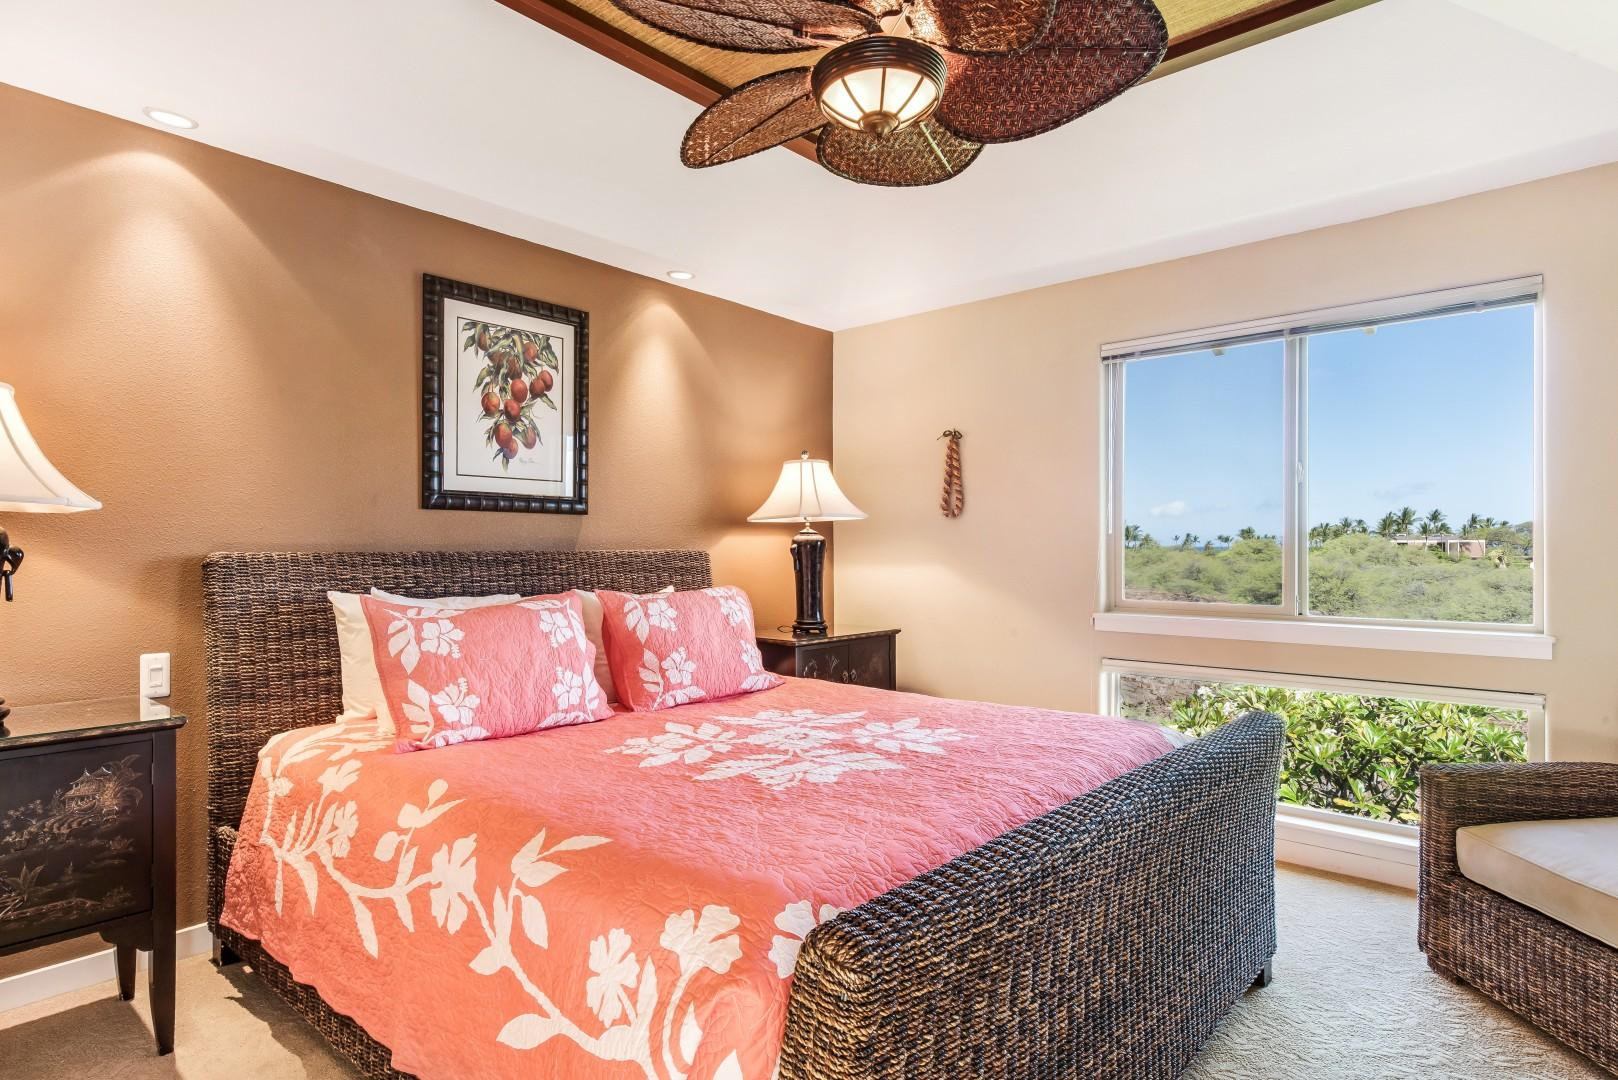 Elegant Master Bedroom w/ King Bed & Large Windows Looking West for Brilliant Sunsets Every Evening